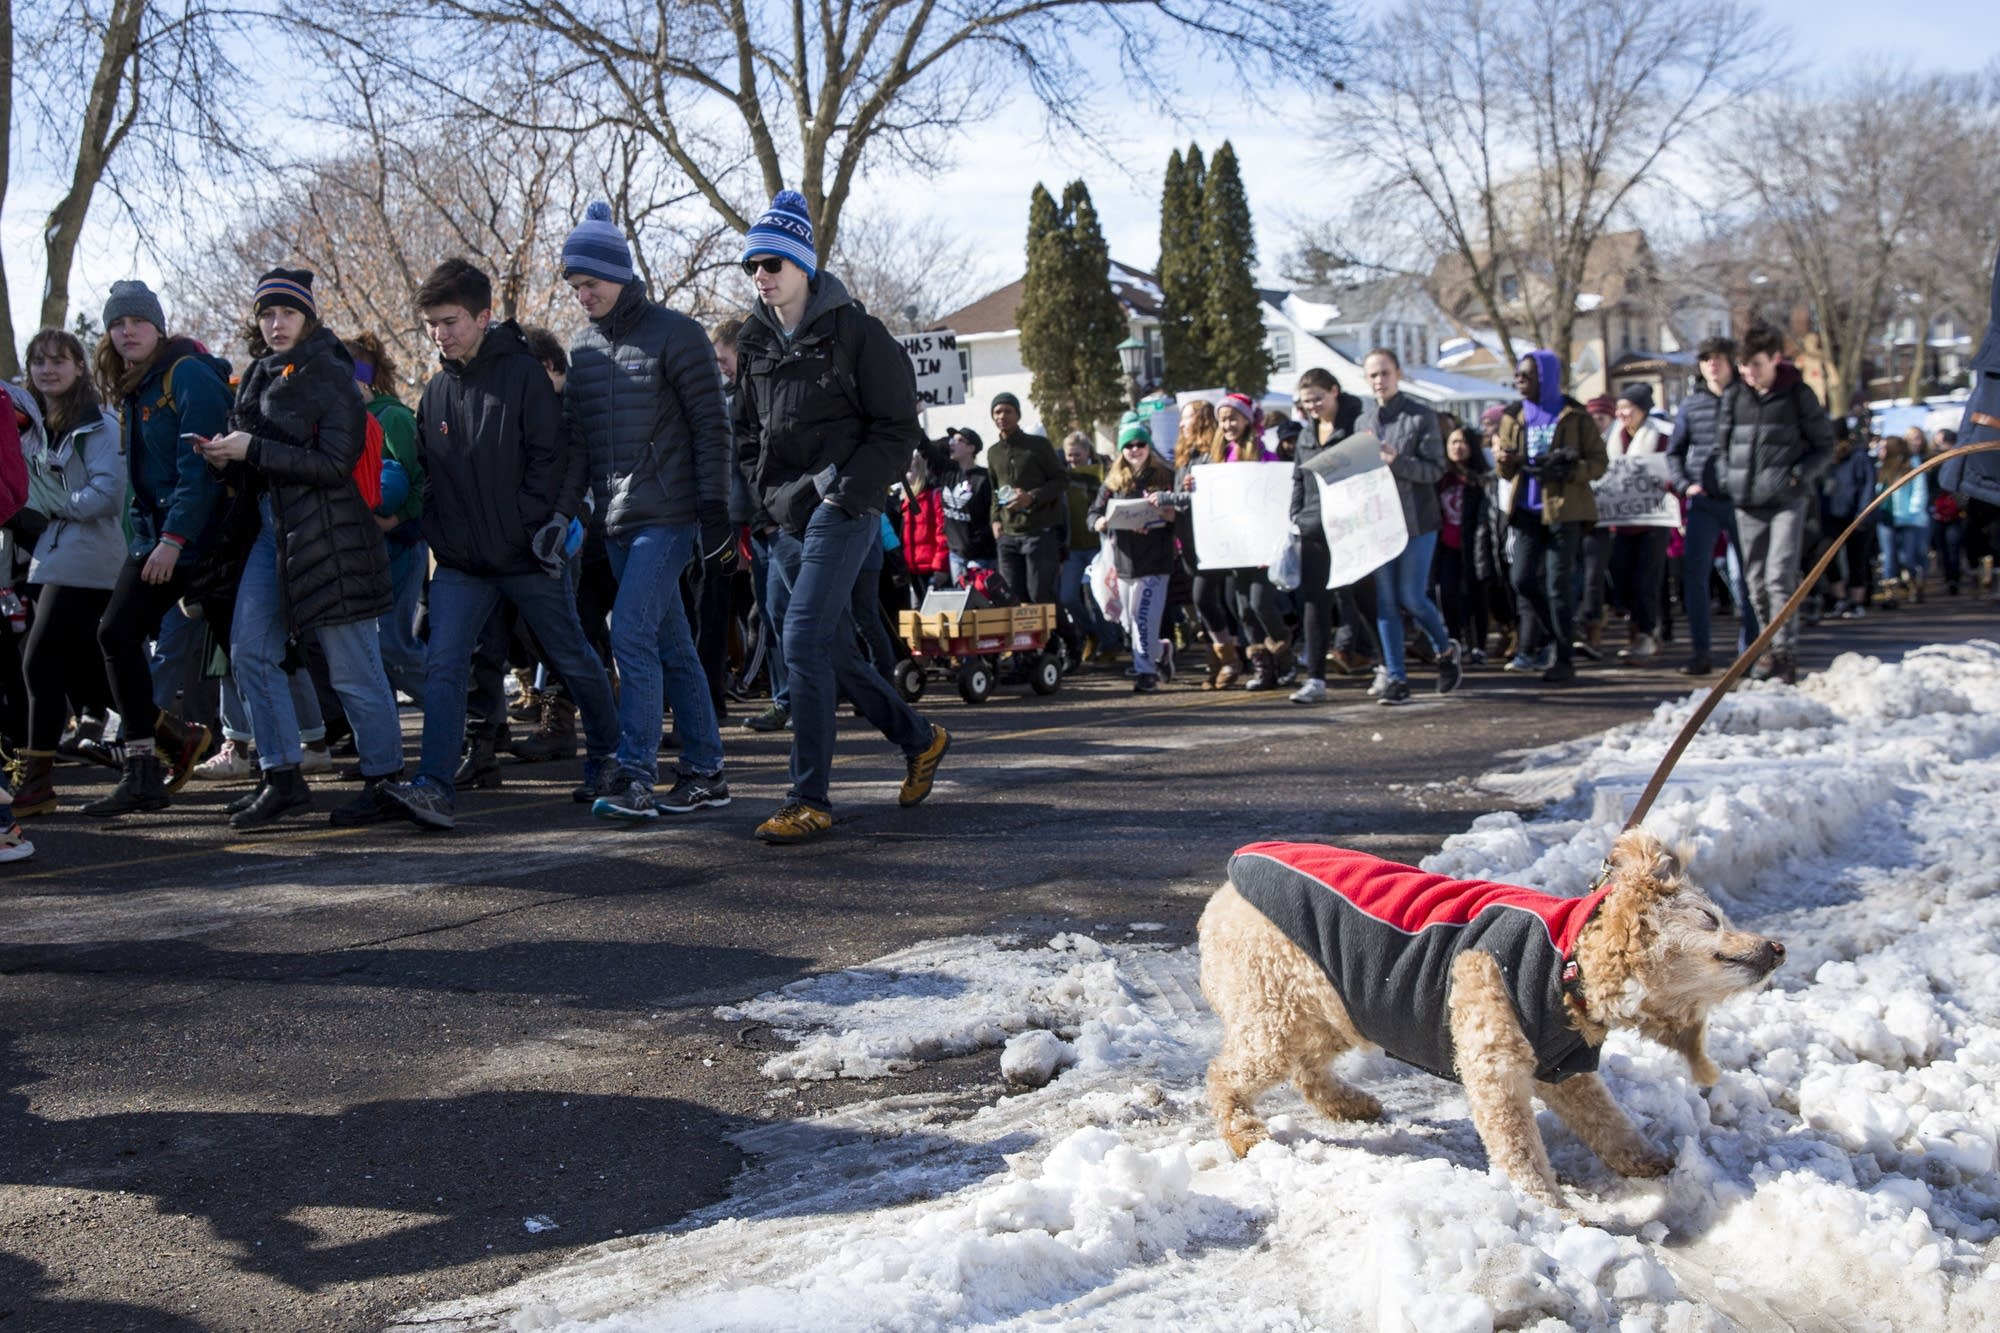 A dog shakes off some snow as protesters march by